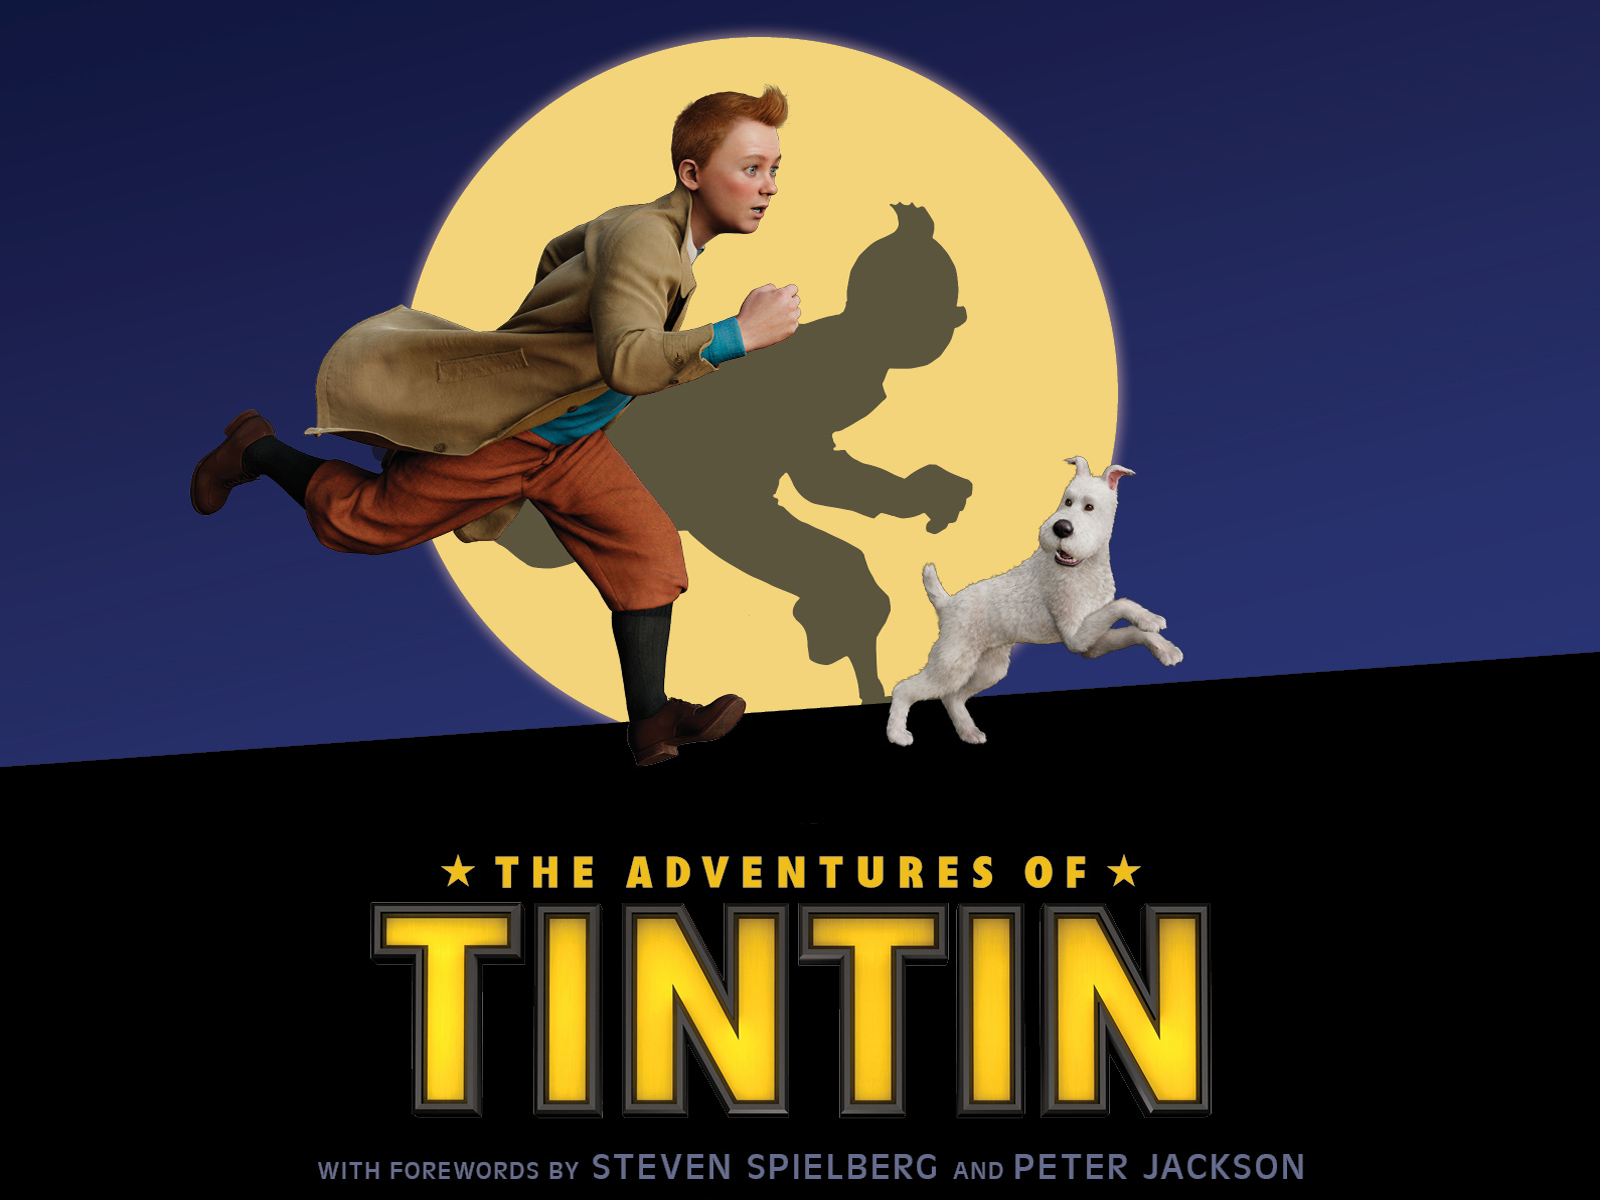 tintin download